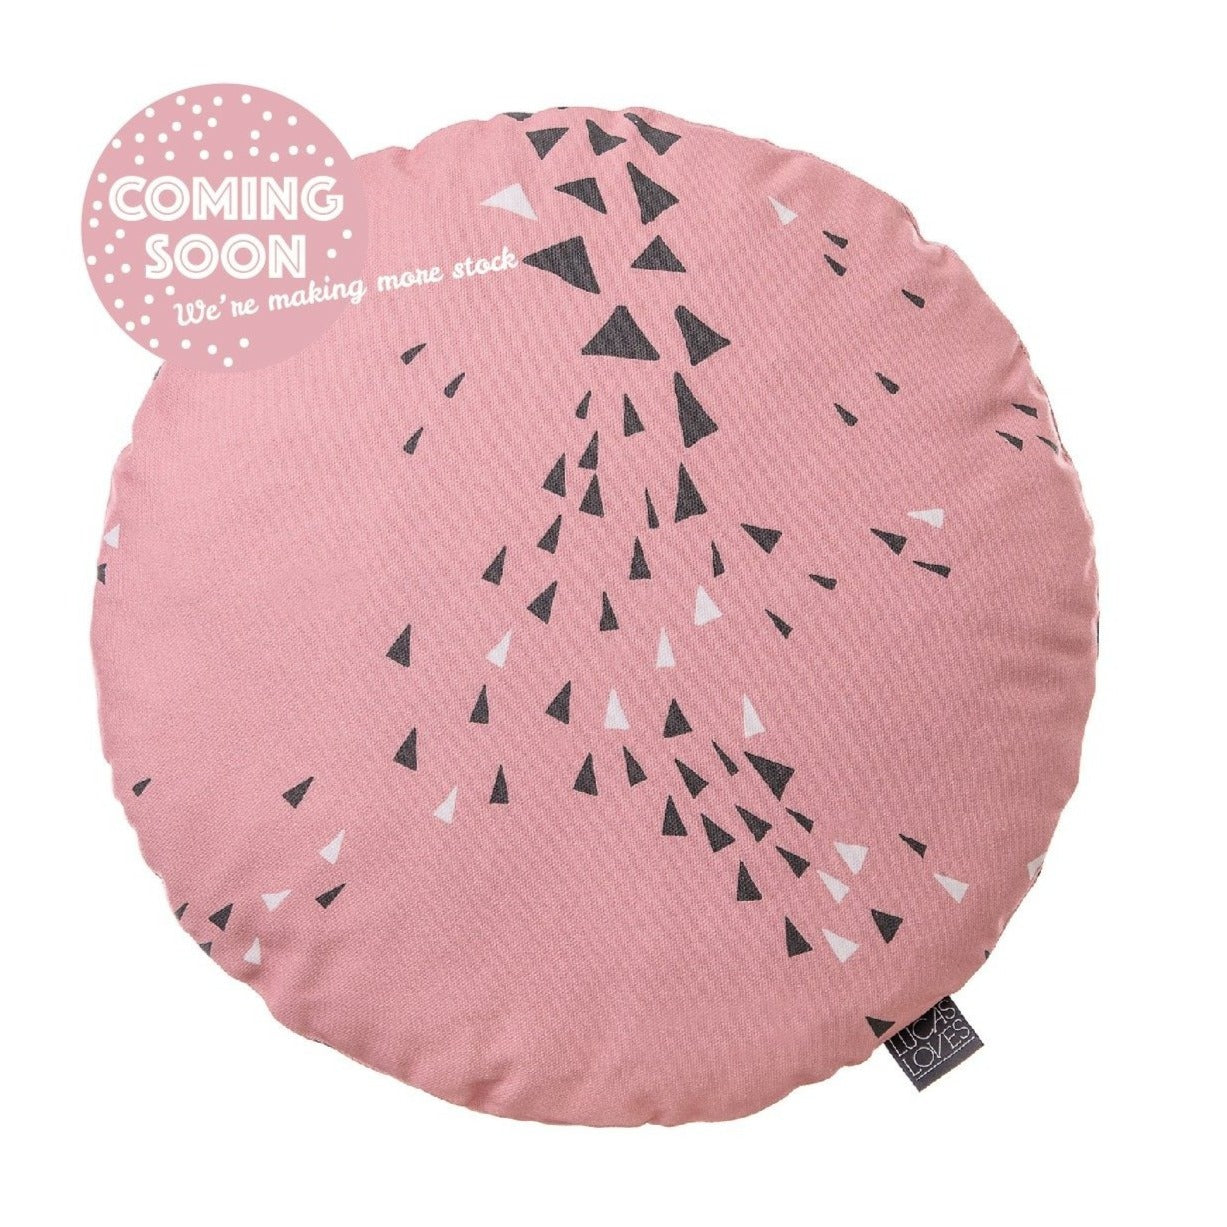 Cushion Cover, Round | MURMUR | INDOOR